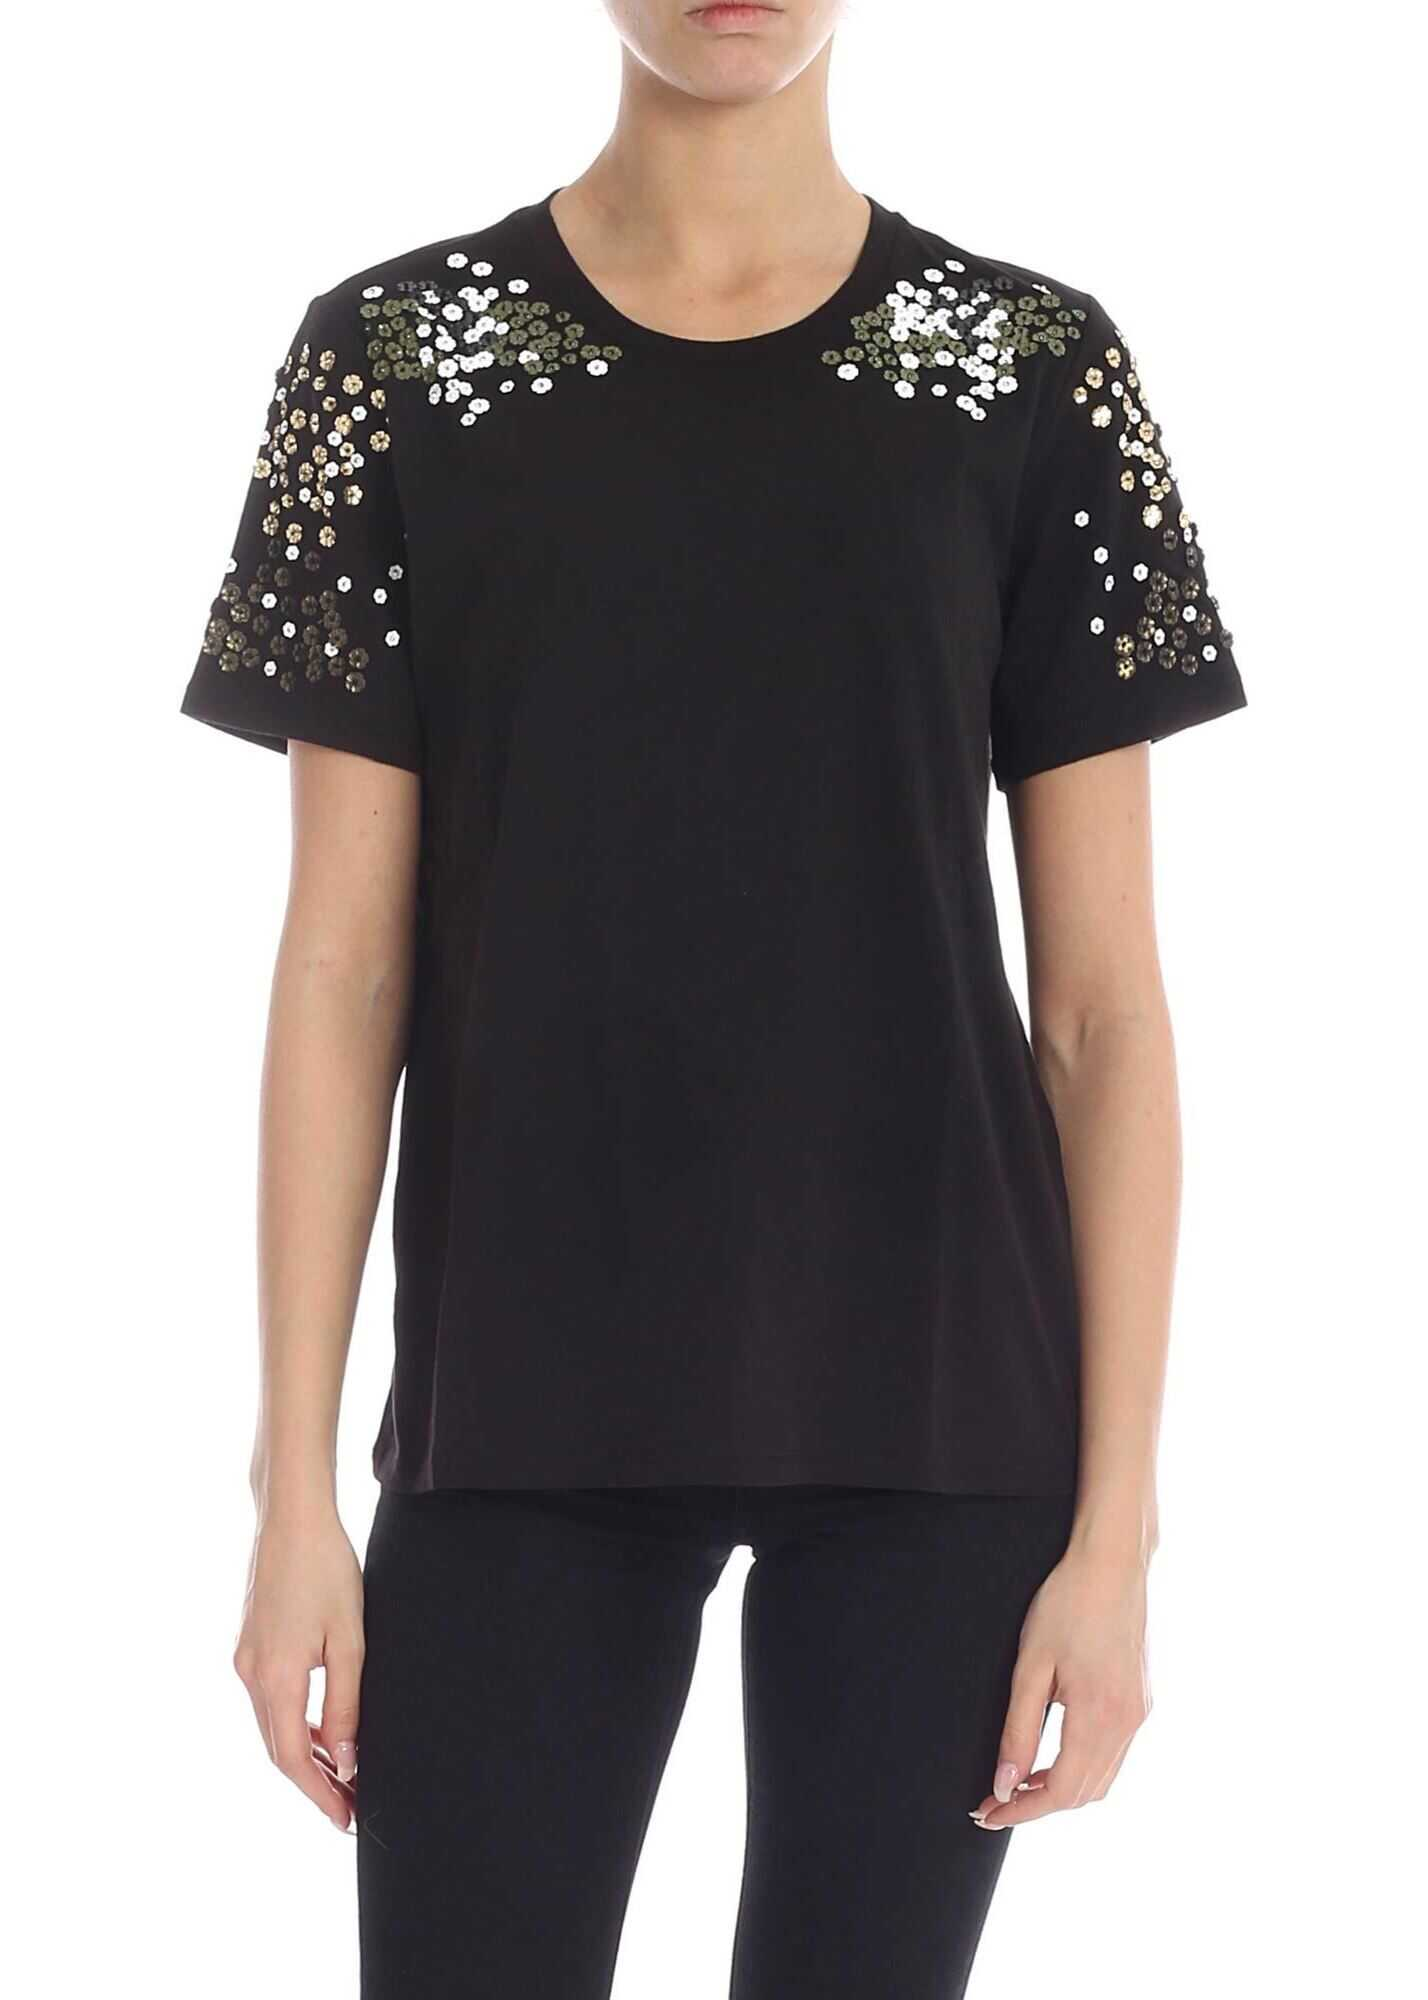 Black T-Shirt With Floral Decorations